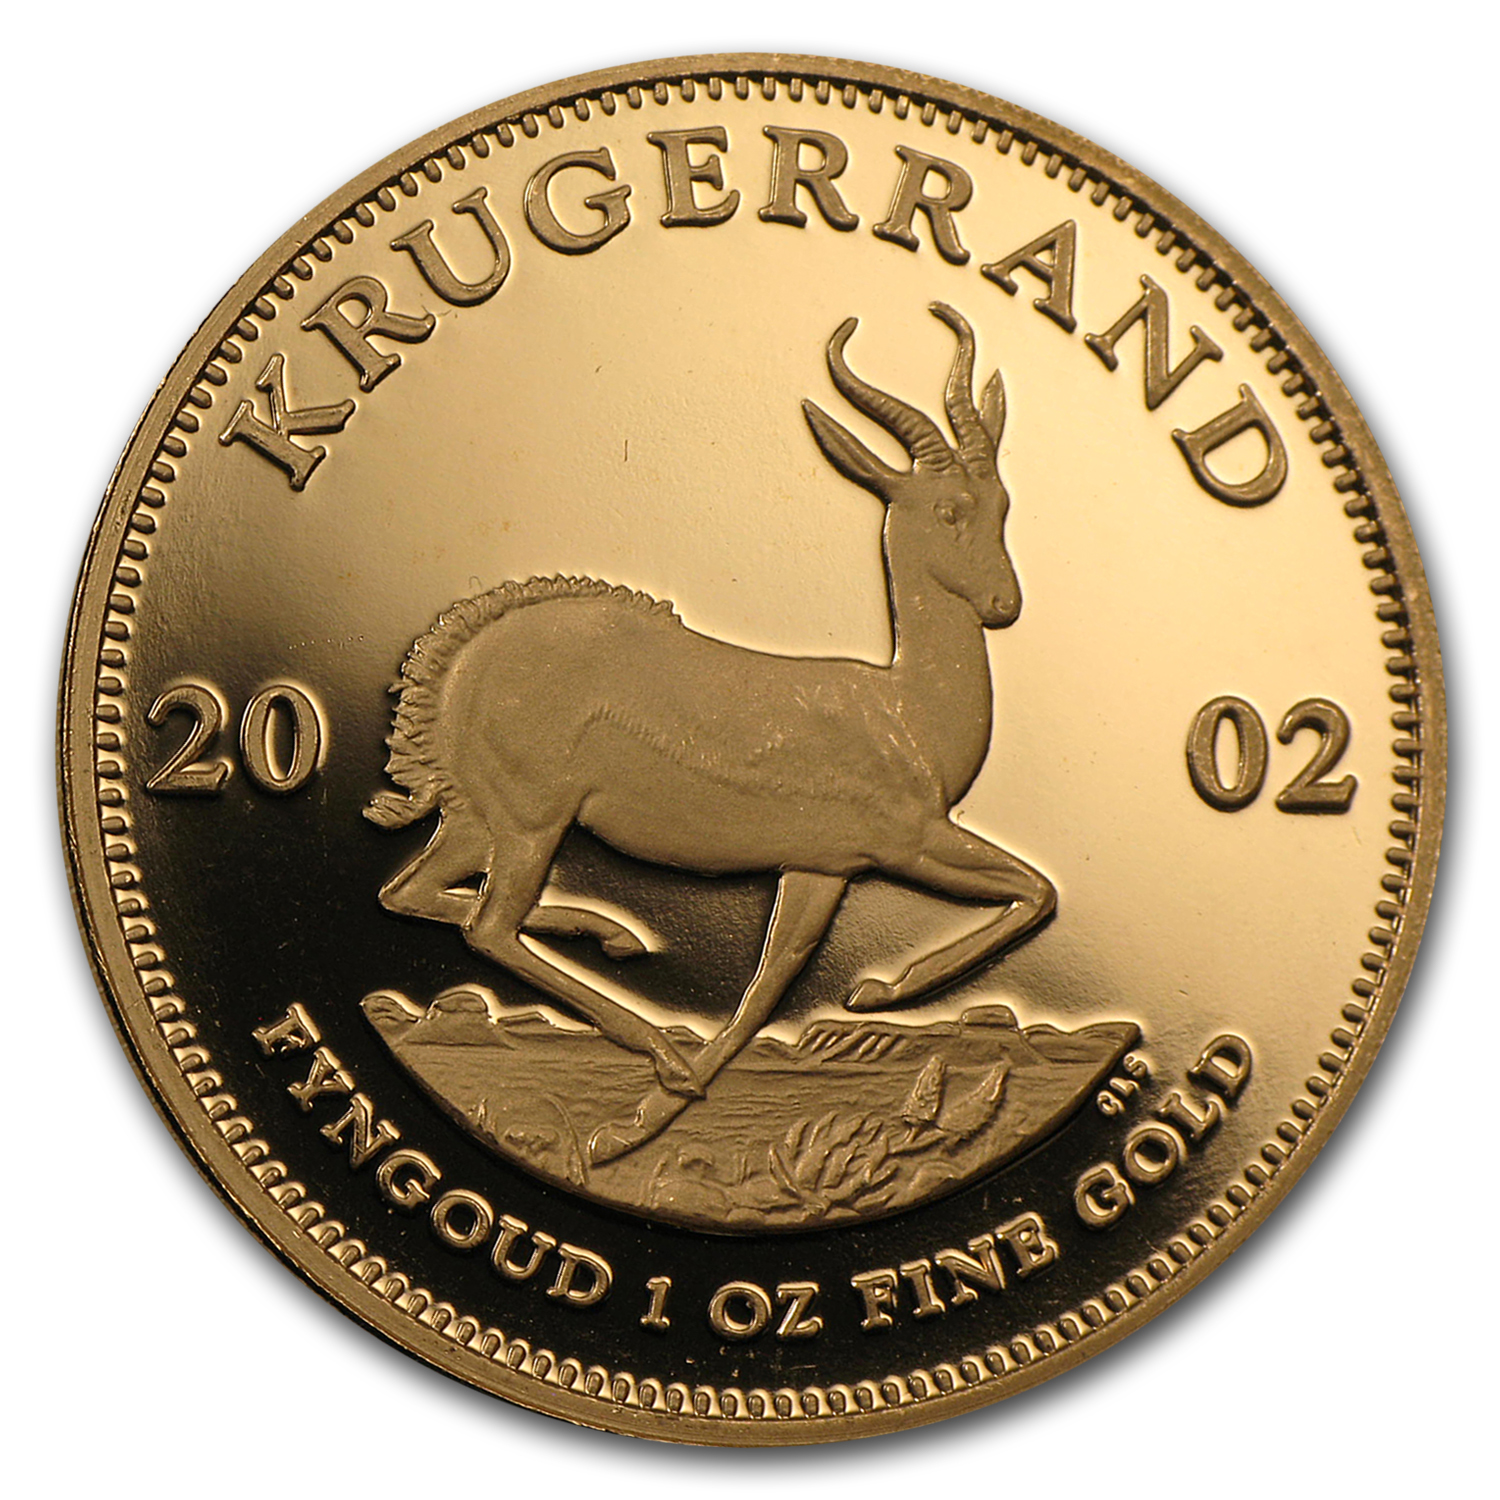 2002 1 oz Gold South African Krugerrand (Proof) Coin Only